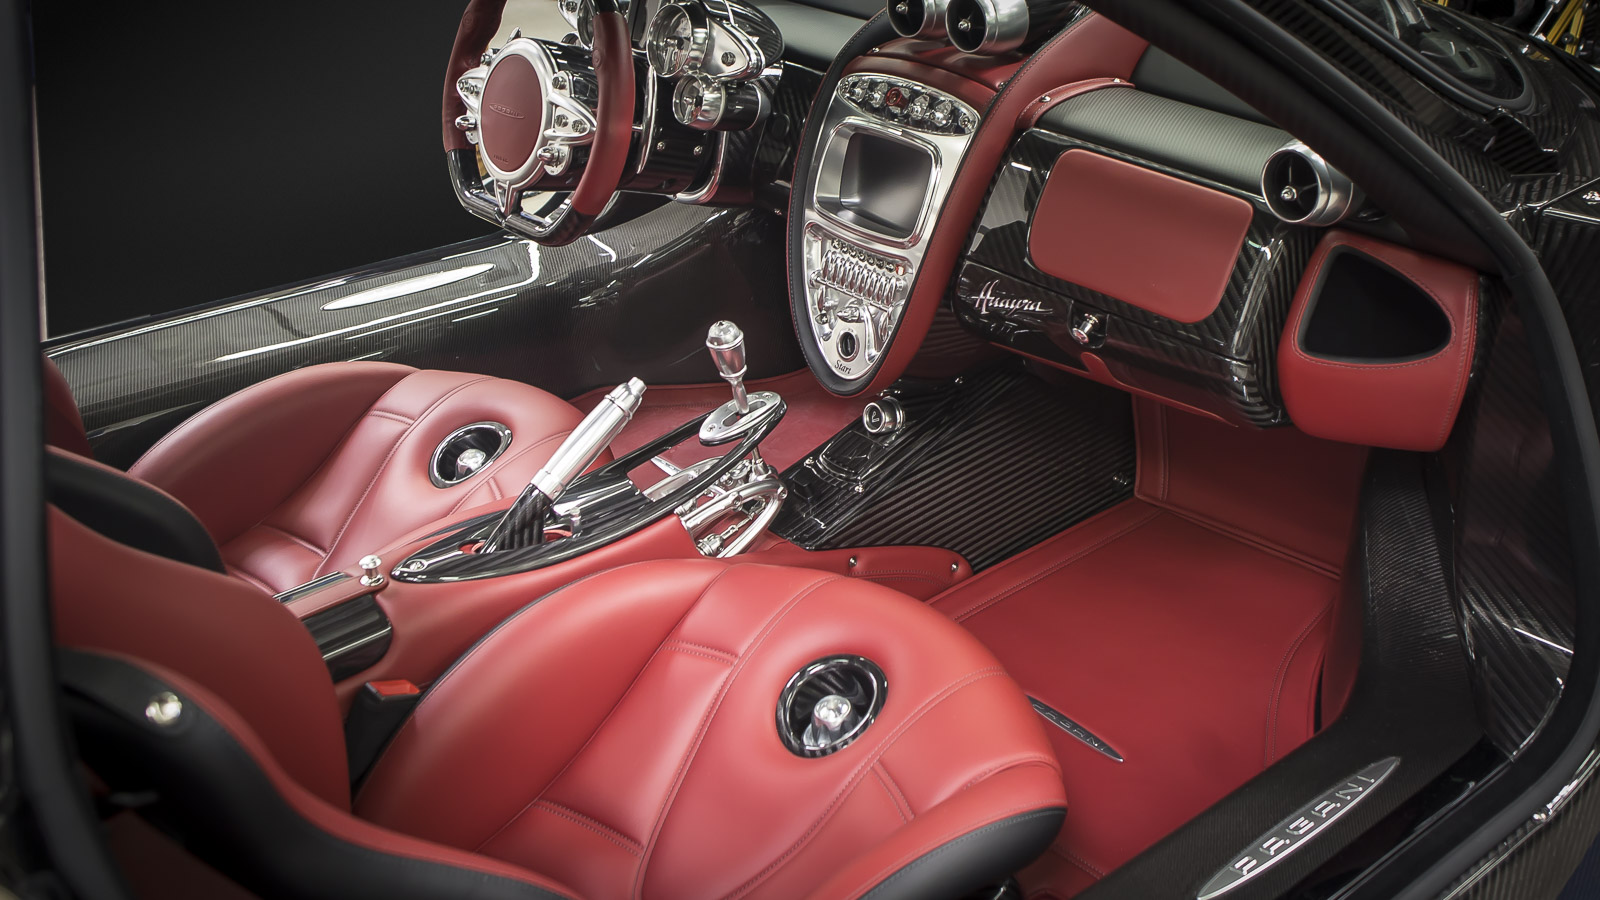 Pagani Huayra Interior Photo by RallyWays